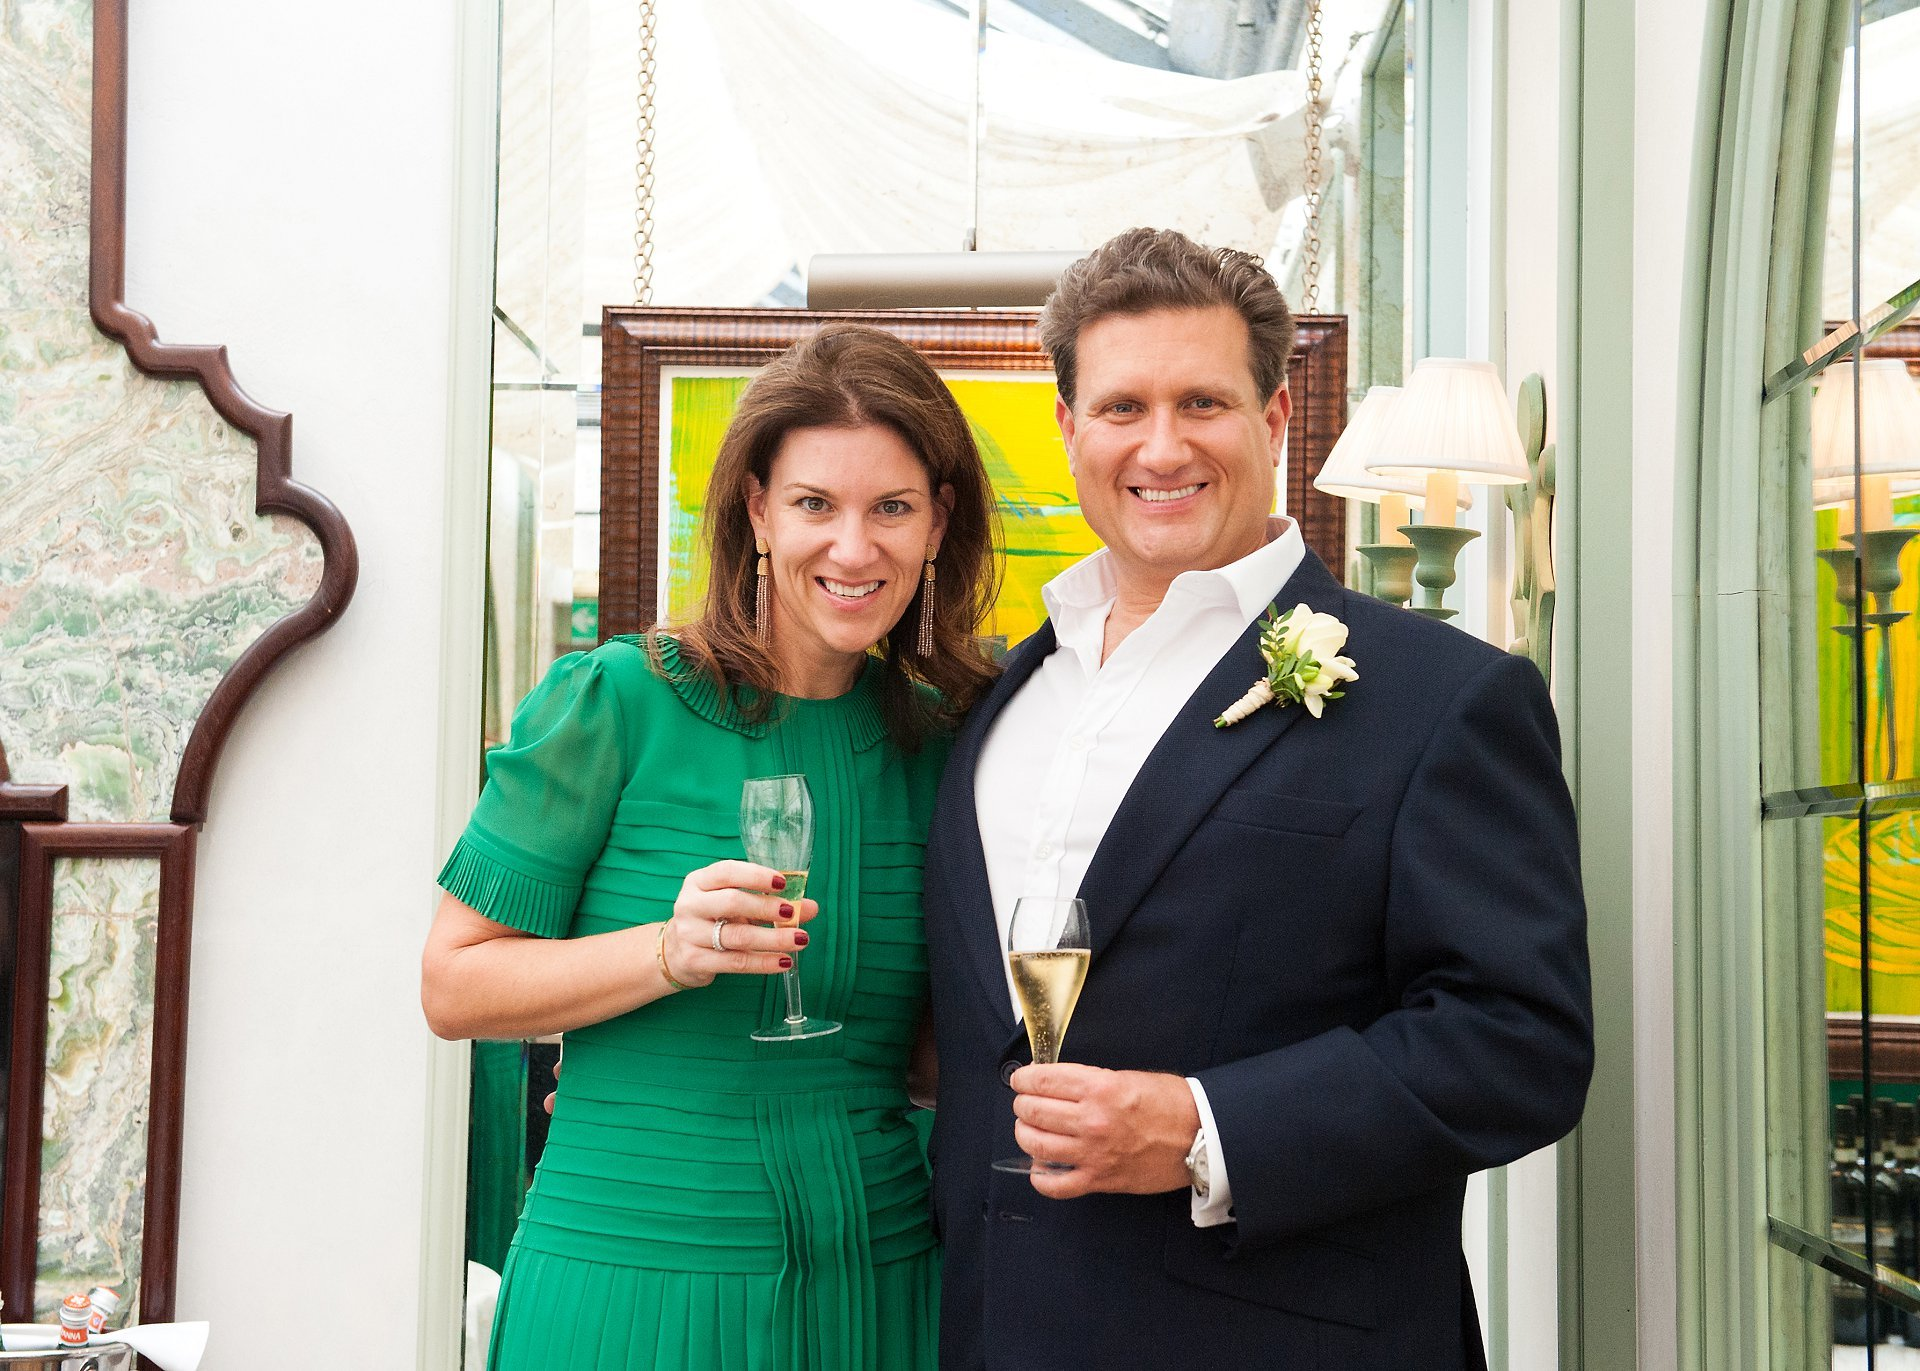 Groom adn his sister celebrate his marriage at Daphne's South Kensington